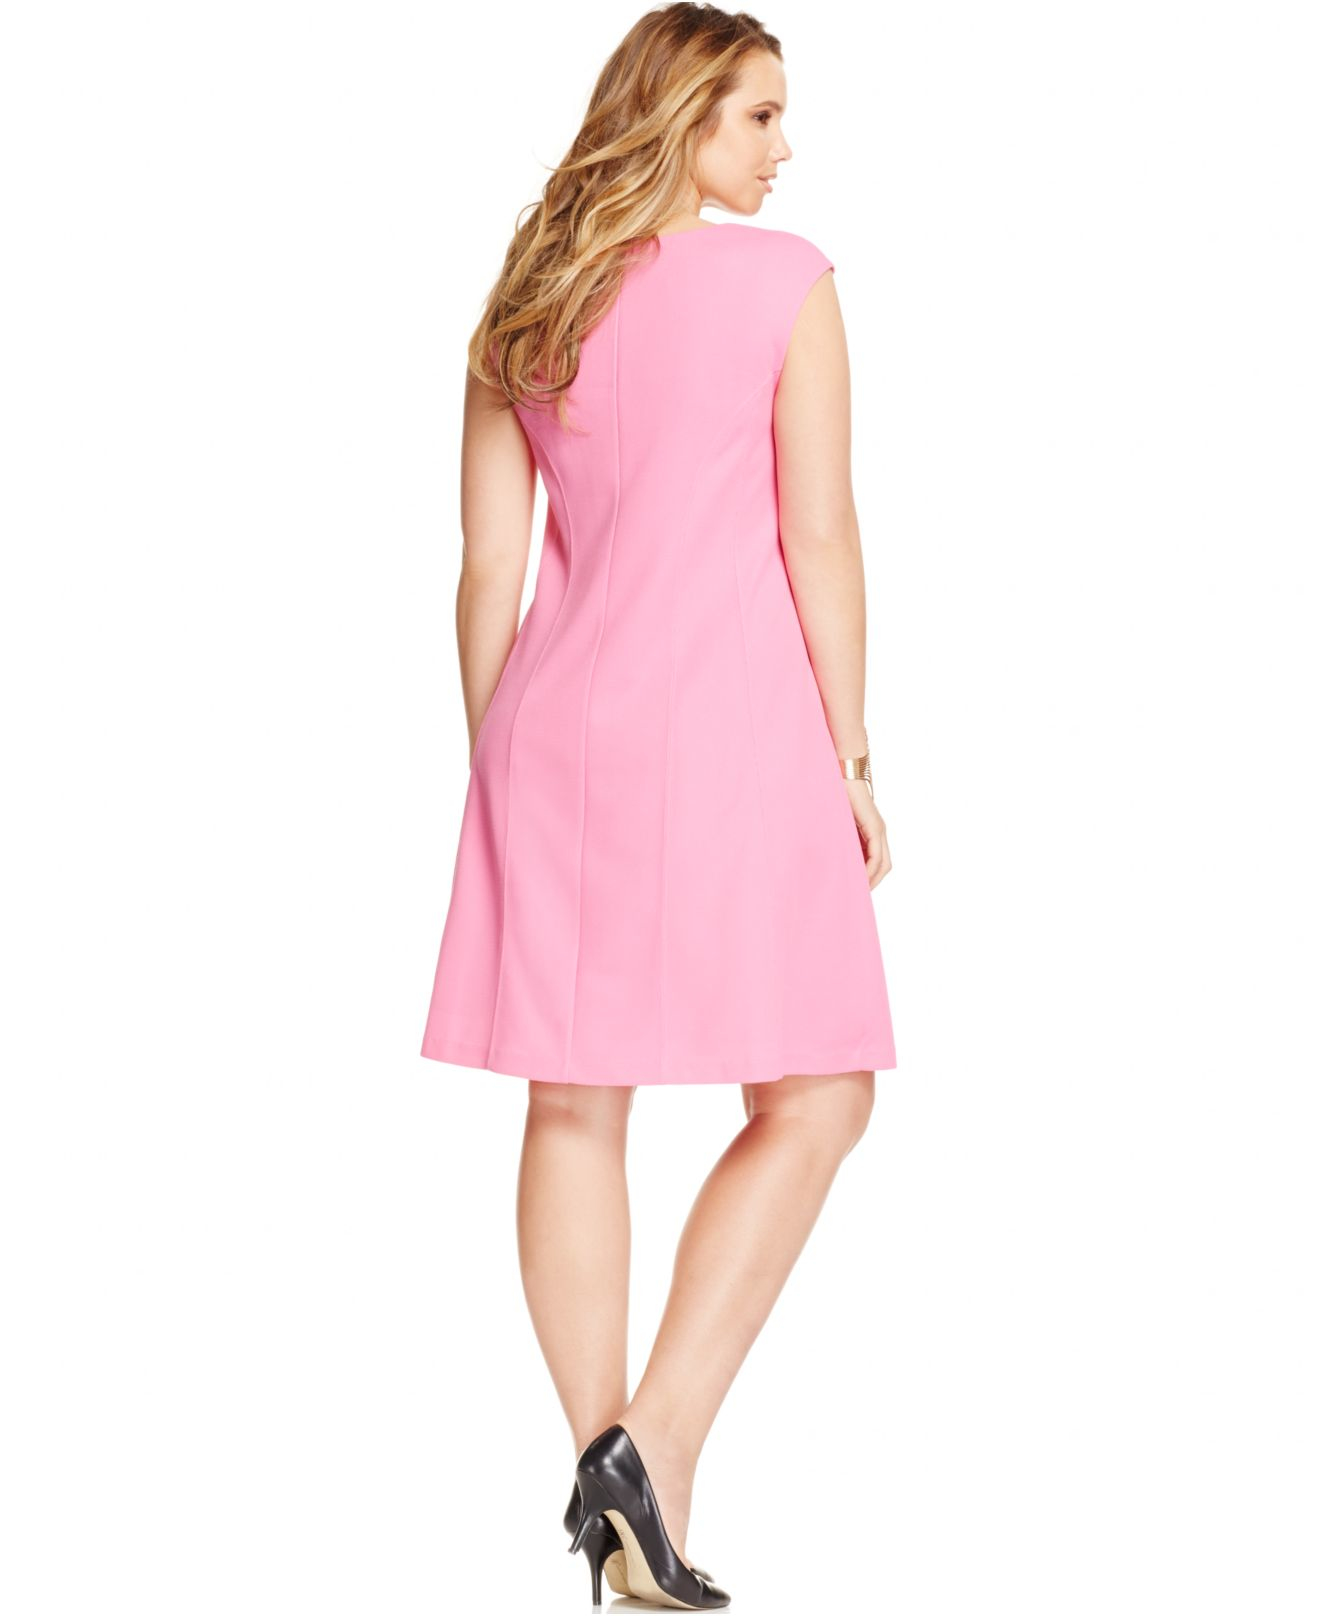 Pink Dresses. We love pink dresses!From pretty pastel shades to fabulous fuchsia hues, our lovely pink dresses are sure to sweeten up your daily outfits. Every girl needs a cute pink frock in her closet!Add feminine flair to every ensemble with our vintage-style pink dresses!